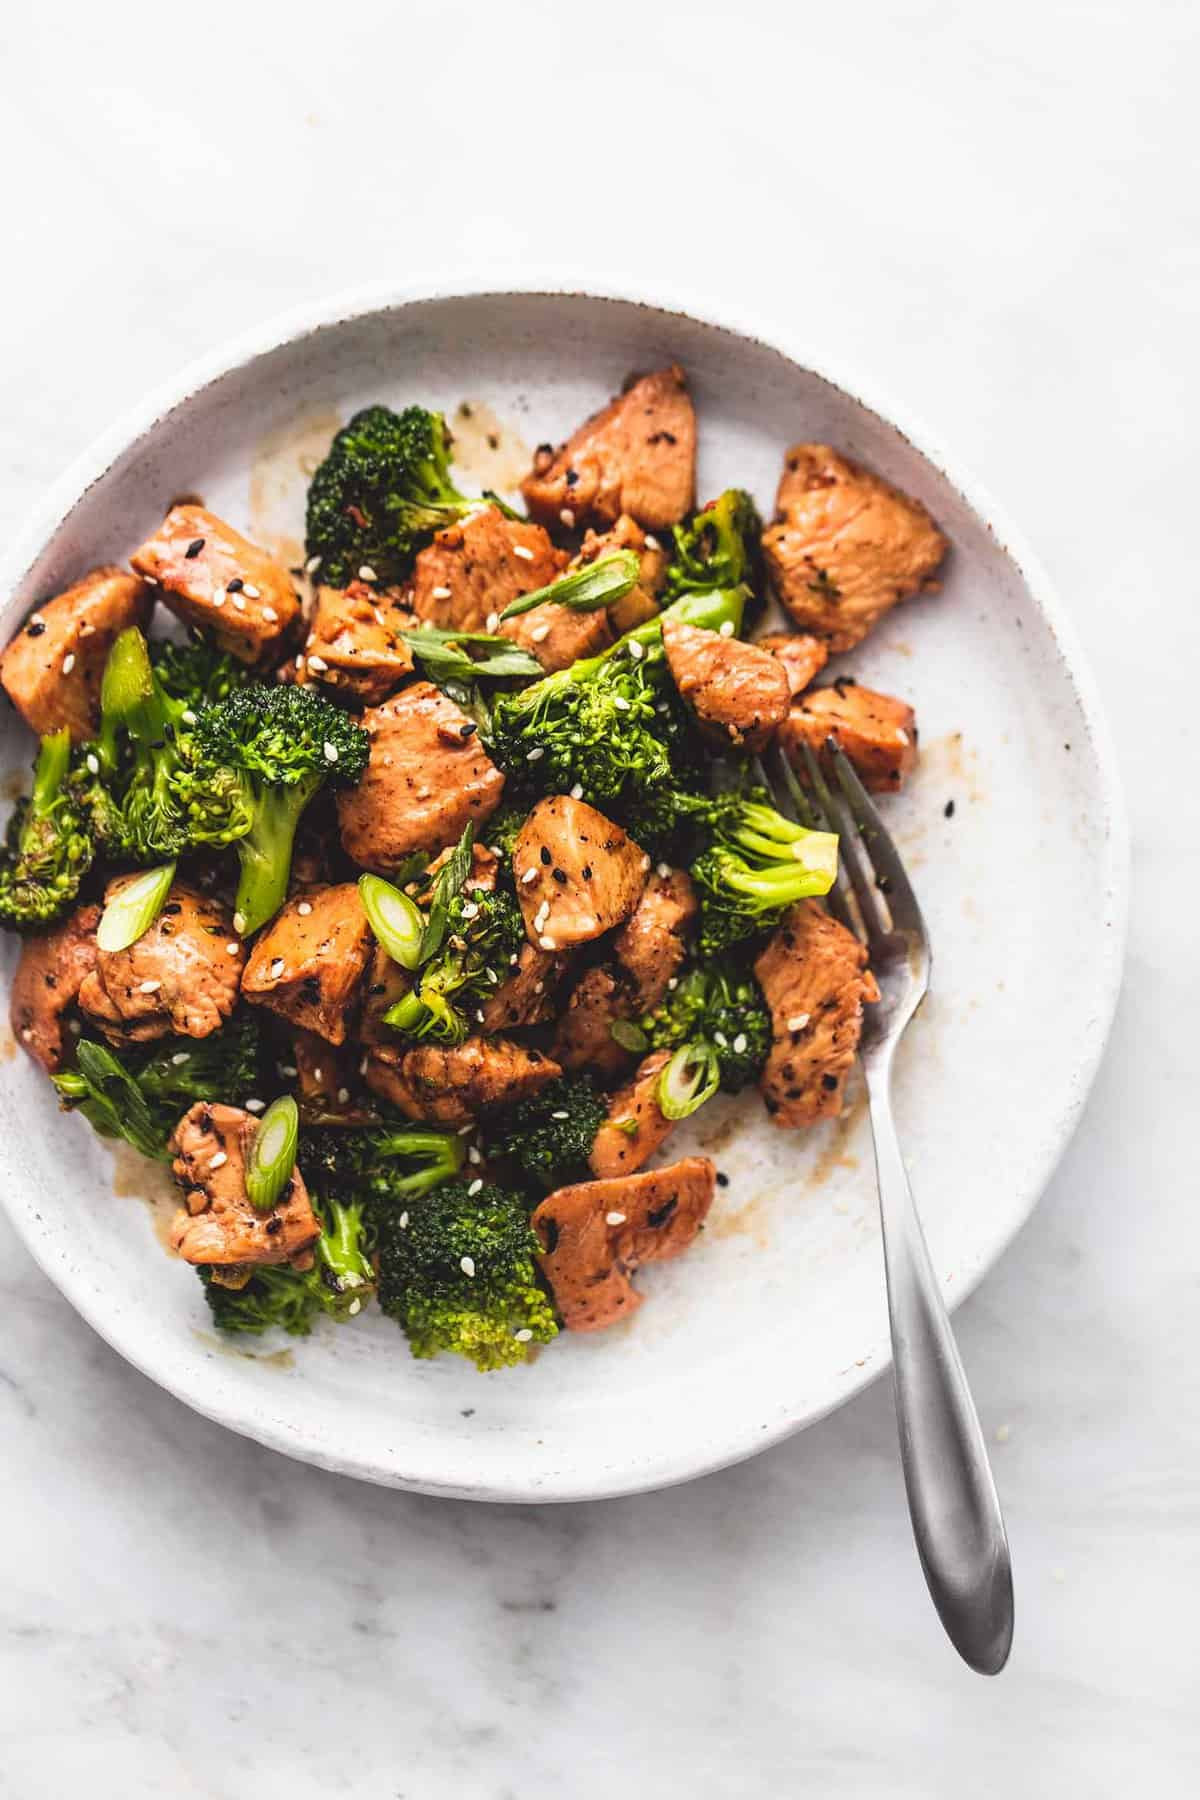 top view of chicken and broccoli stir fry with a fork on a plate.